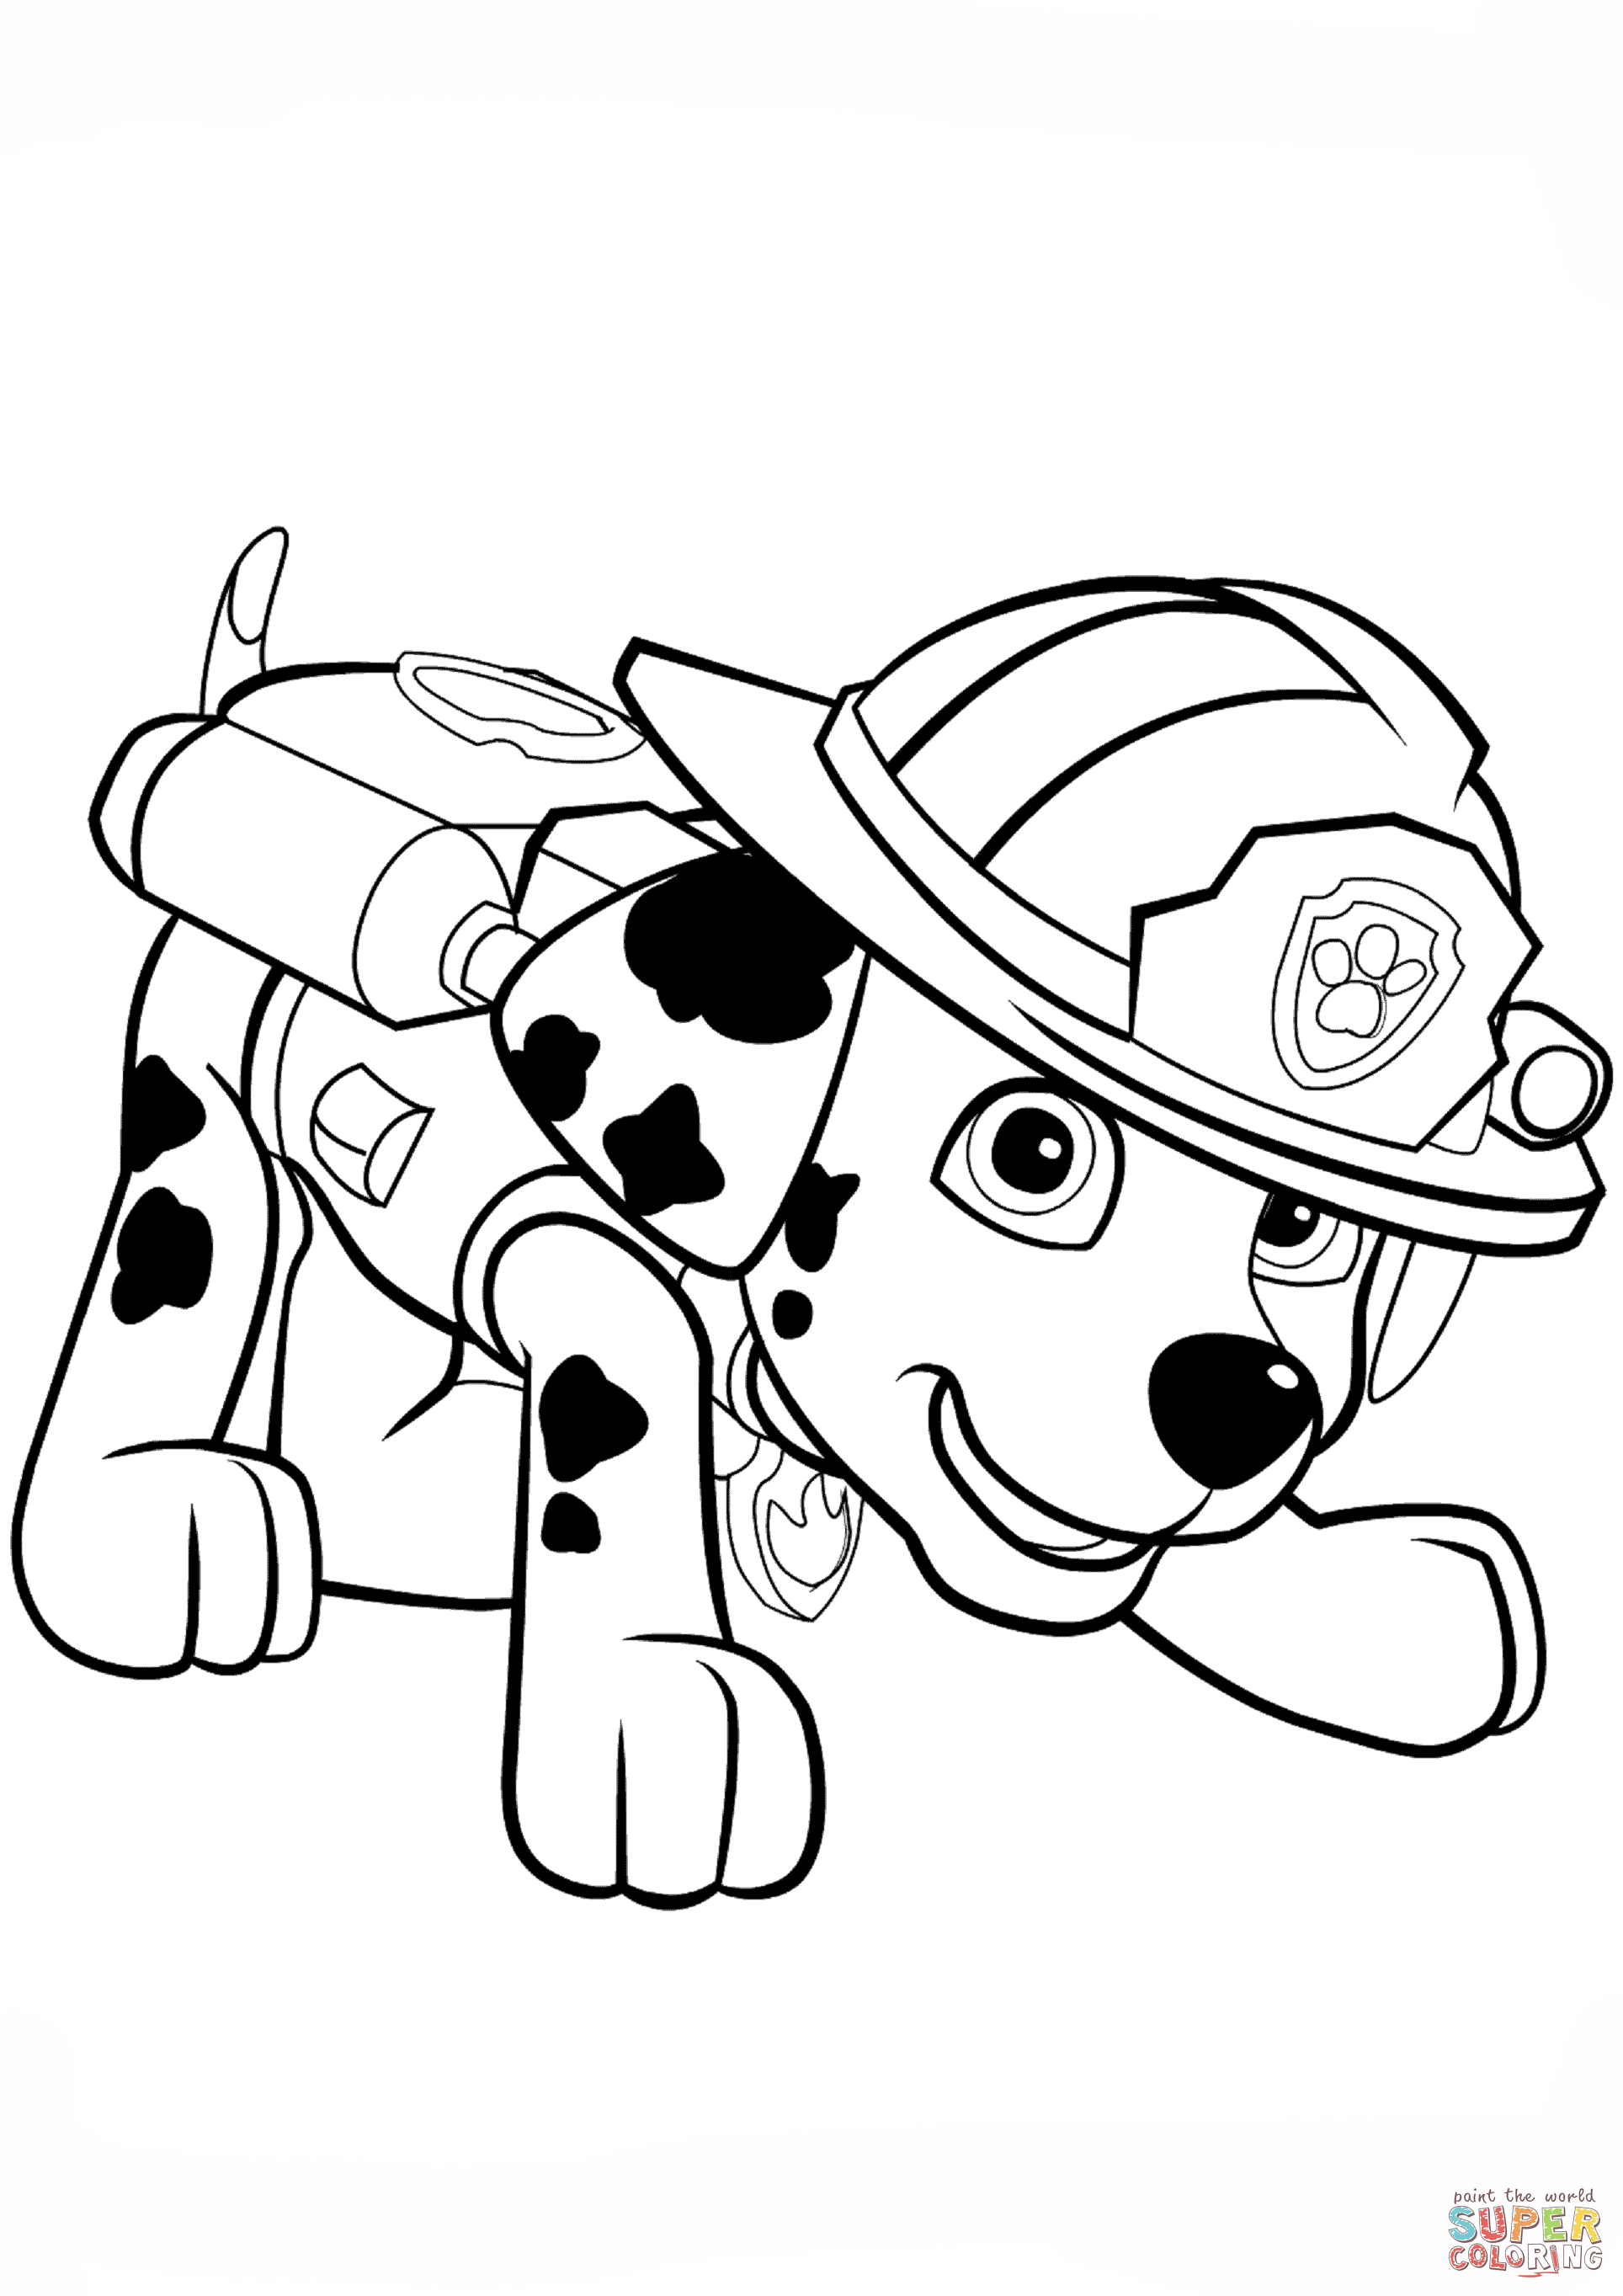 paw patrol marshall coloring paw patrol printable coloring sheets coloring pages marshall paw coloring patrol